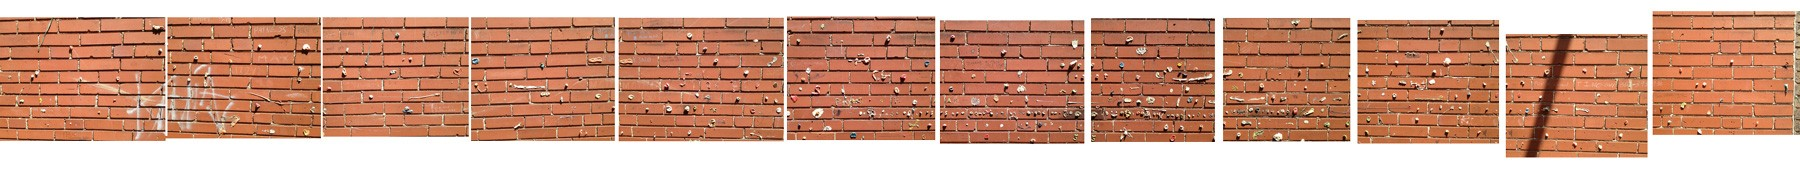 The Webster Groves Gum Wall. [Click pic to see in vivid-er glory.] - TOM FINKEL